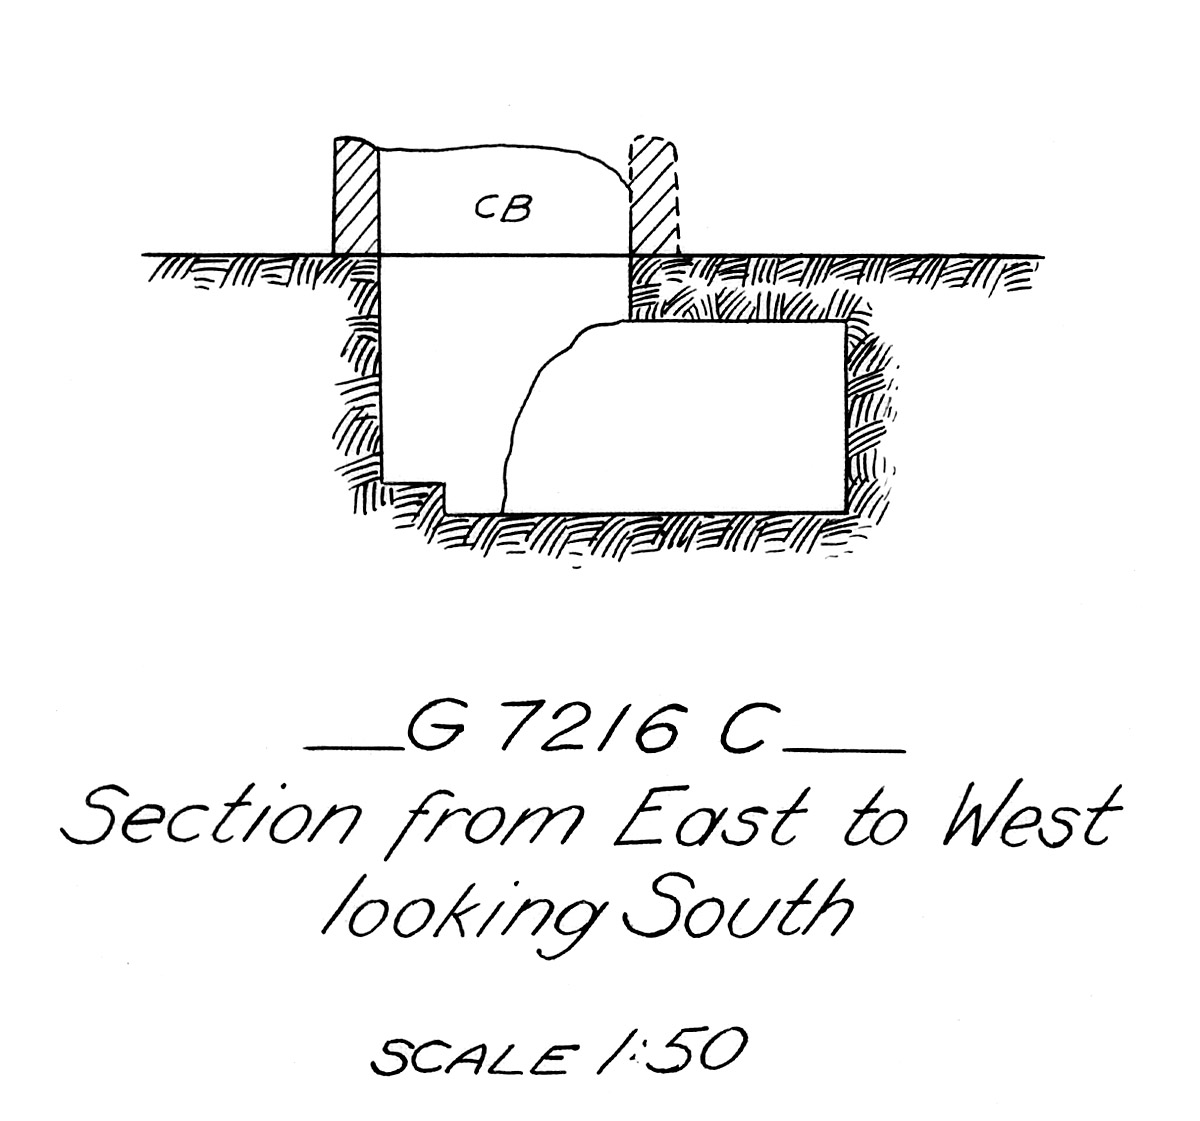 Maps and plans: G 7216, Shaft C